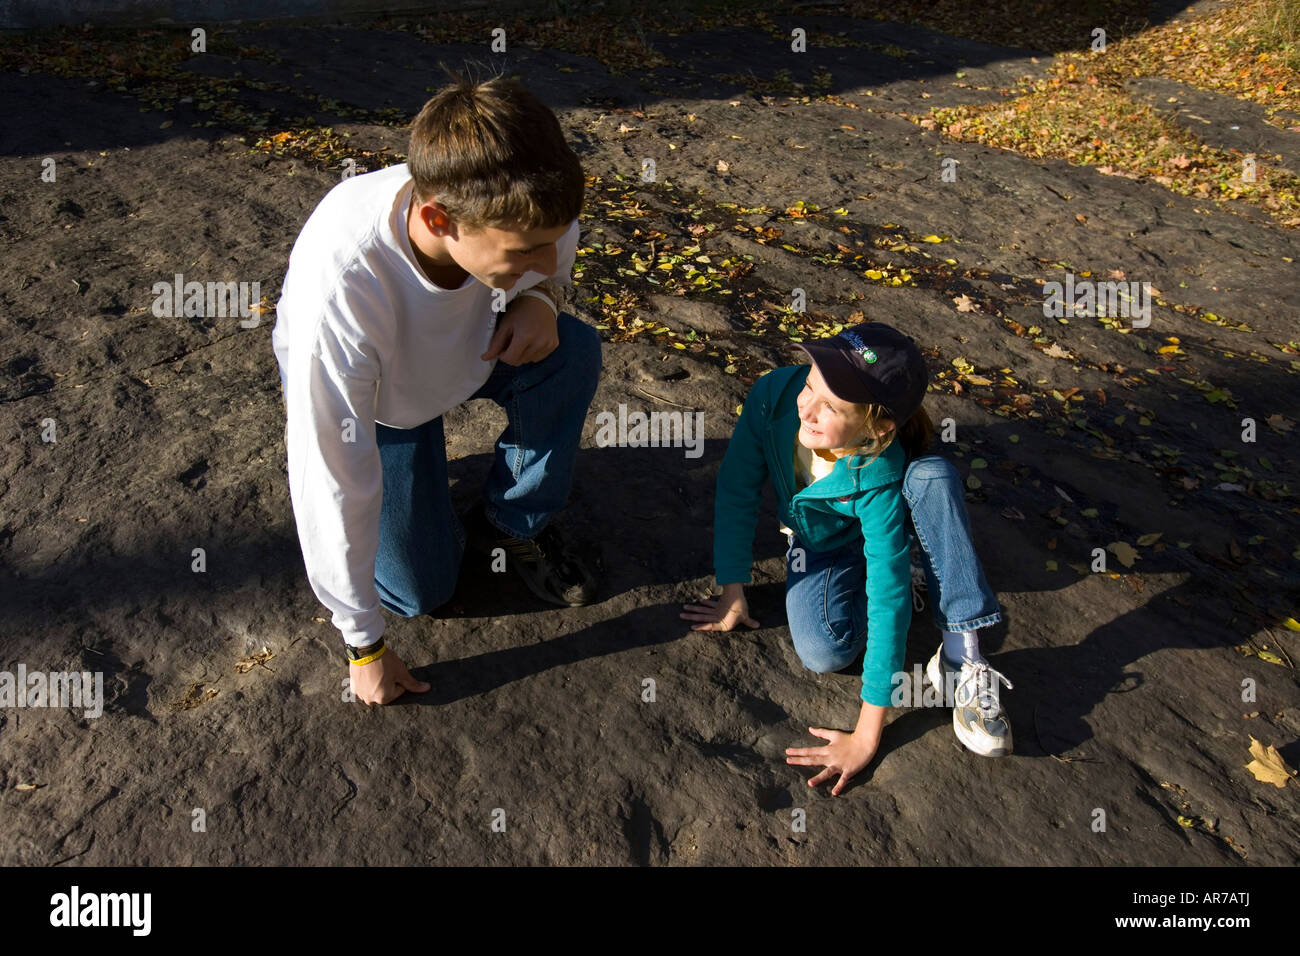 A brother and sister look at a dinsaur footprint near the Connecticut River in Holyoke, Massachusetts. - Stock Image